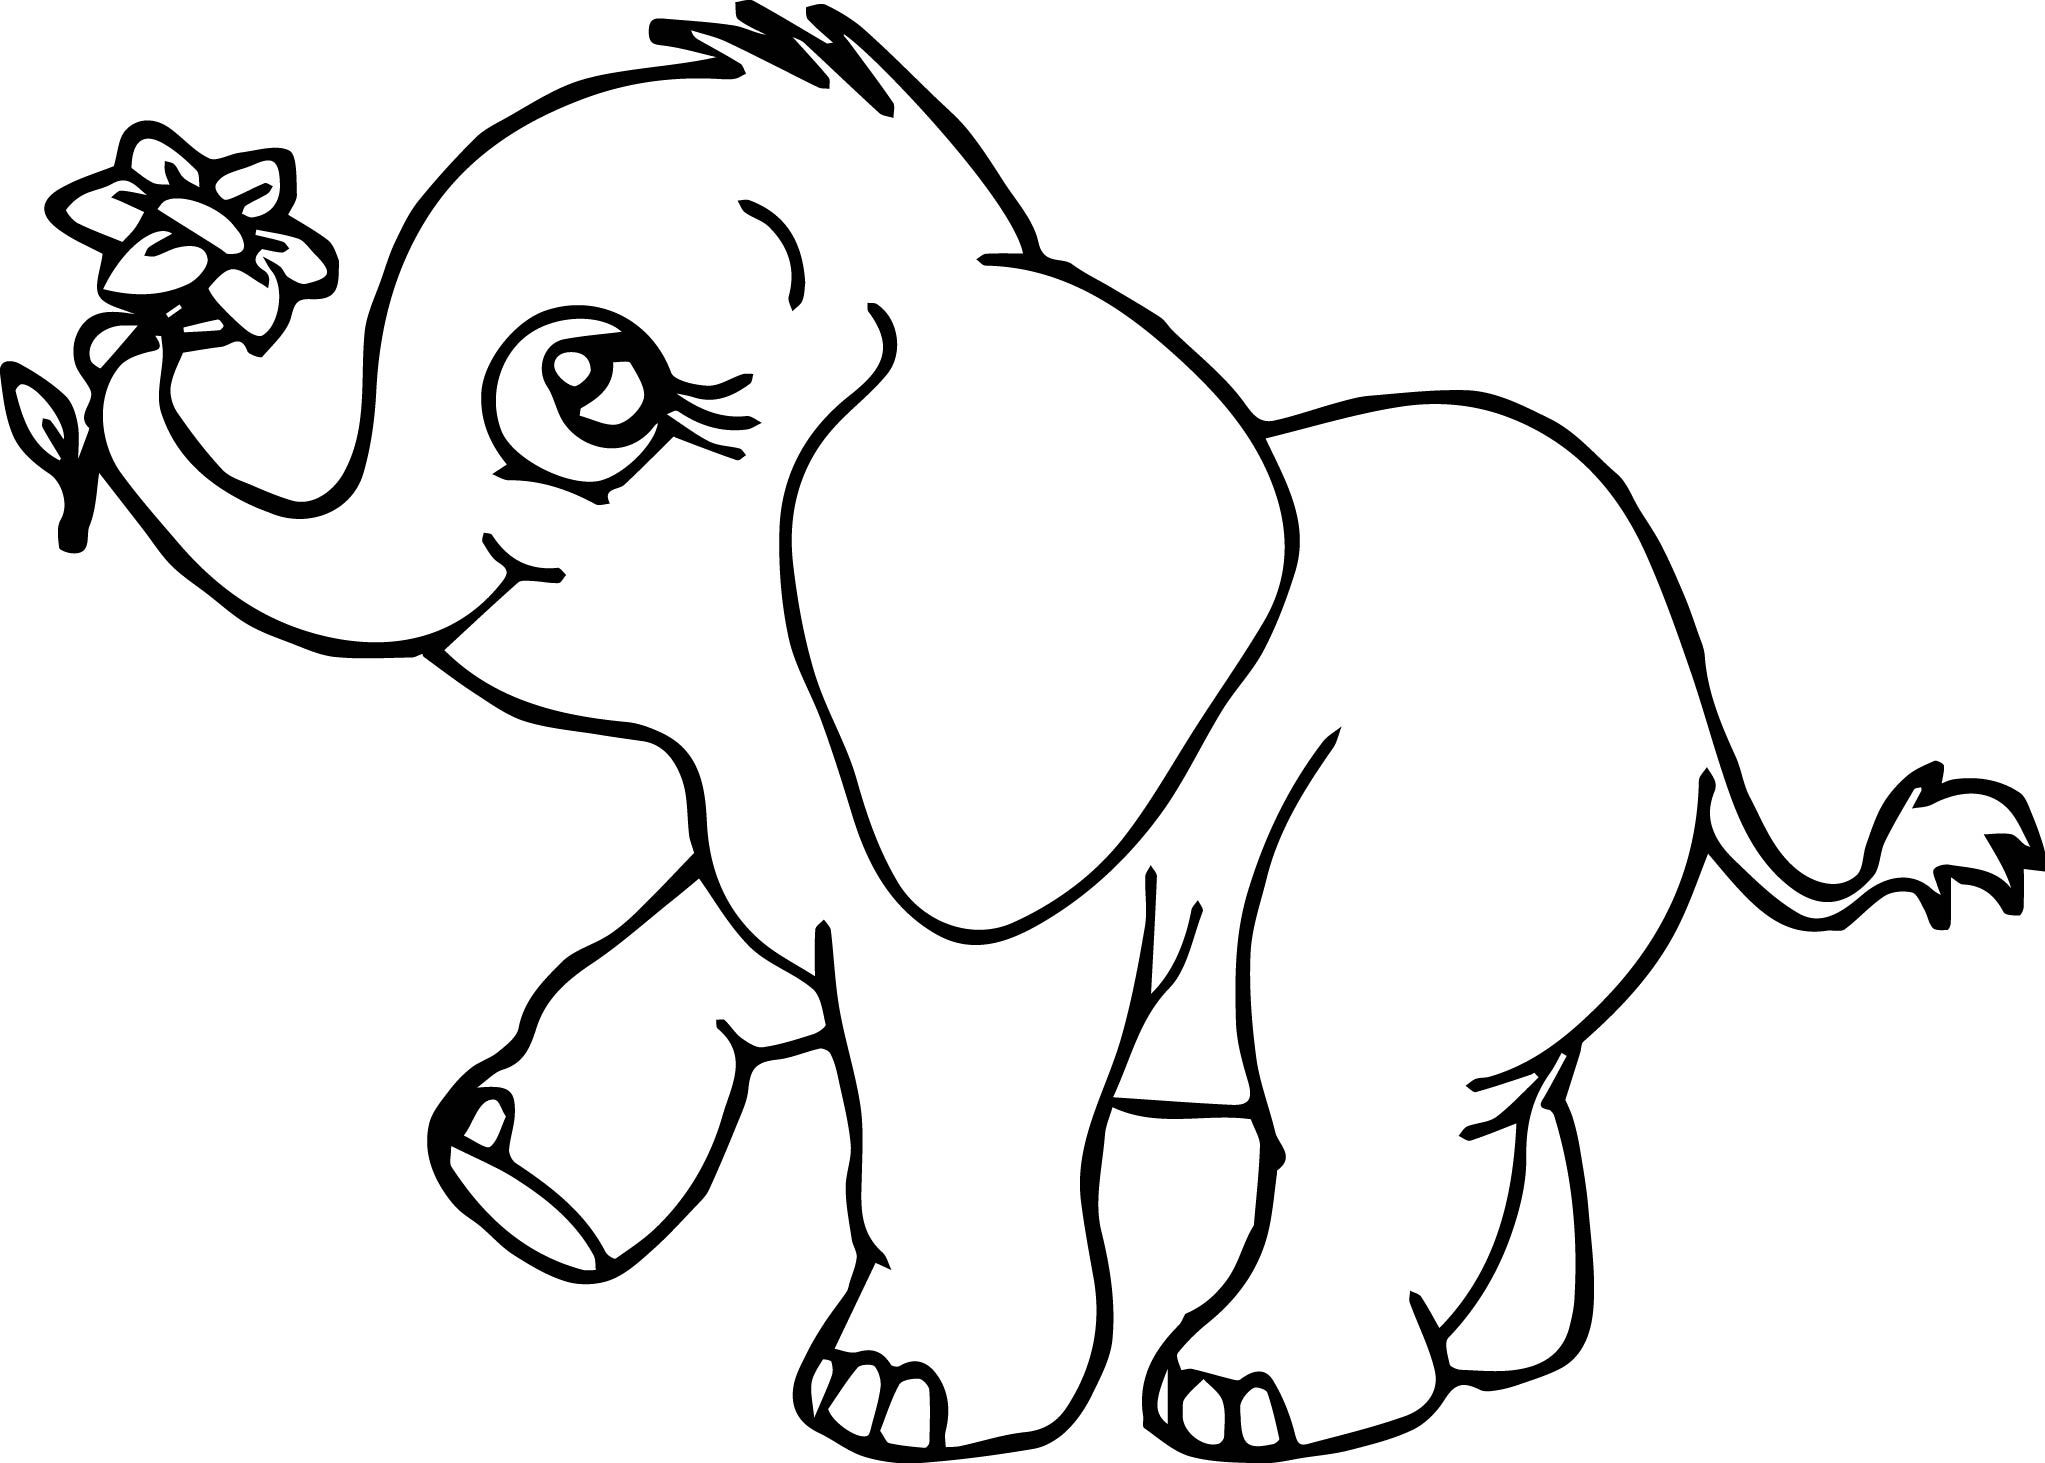 Cool Elephant Love Coloring Page Love Coloring Pages Elephant Coloring Page Elephant Drawing